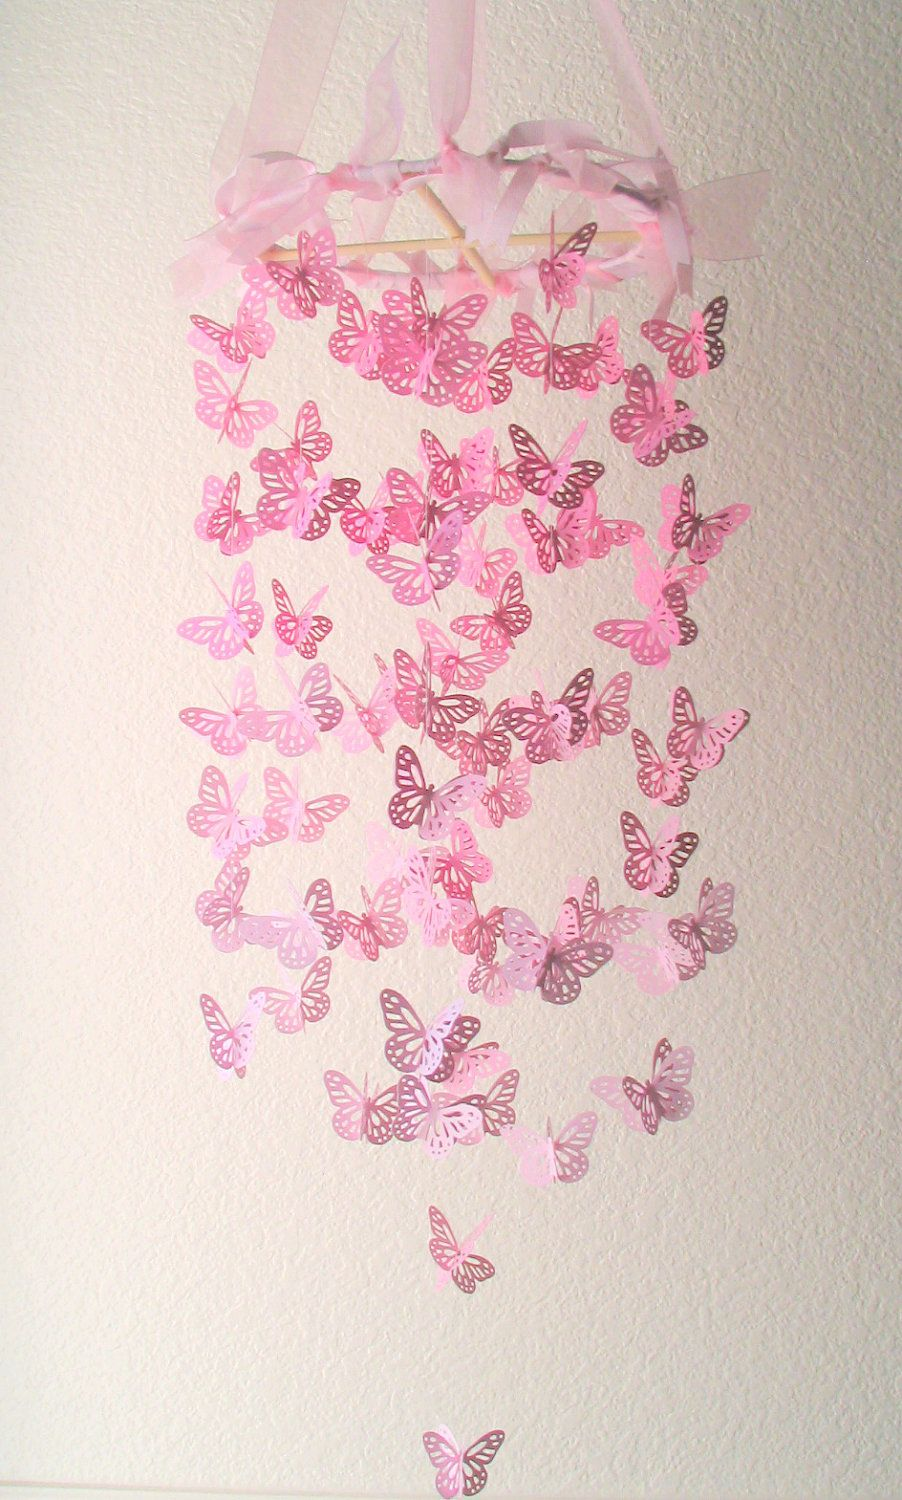 Pink butterfly chandelier monarch butterfly chandelier mobile items similar to pink butterfly chandelier butterfly chandelier mobilebutterfly mobilenursery mobilebaby girl mobile on etsy arubaitofo Gallery